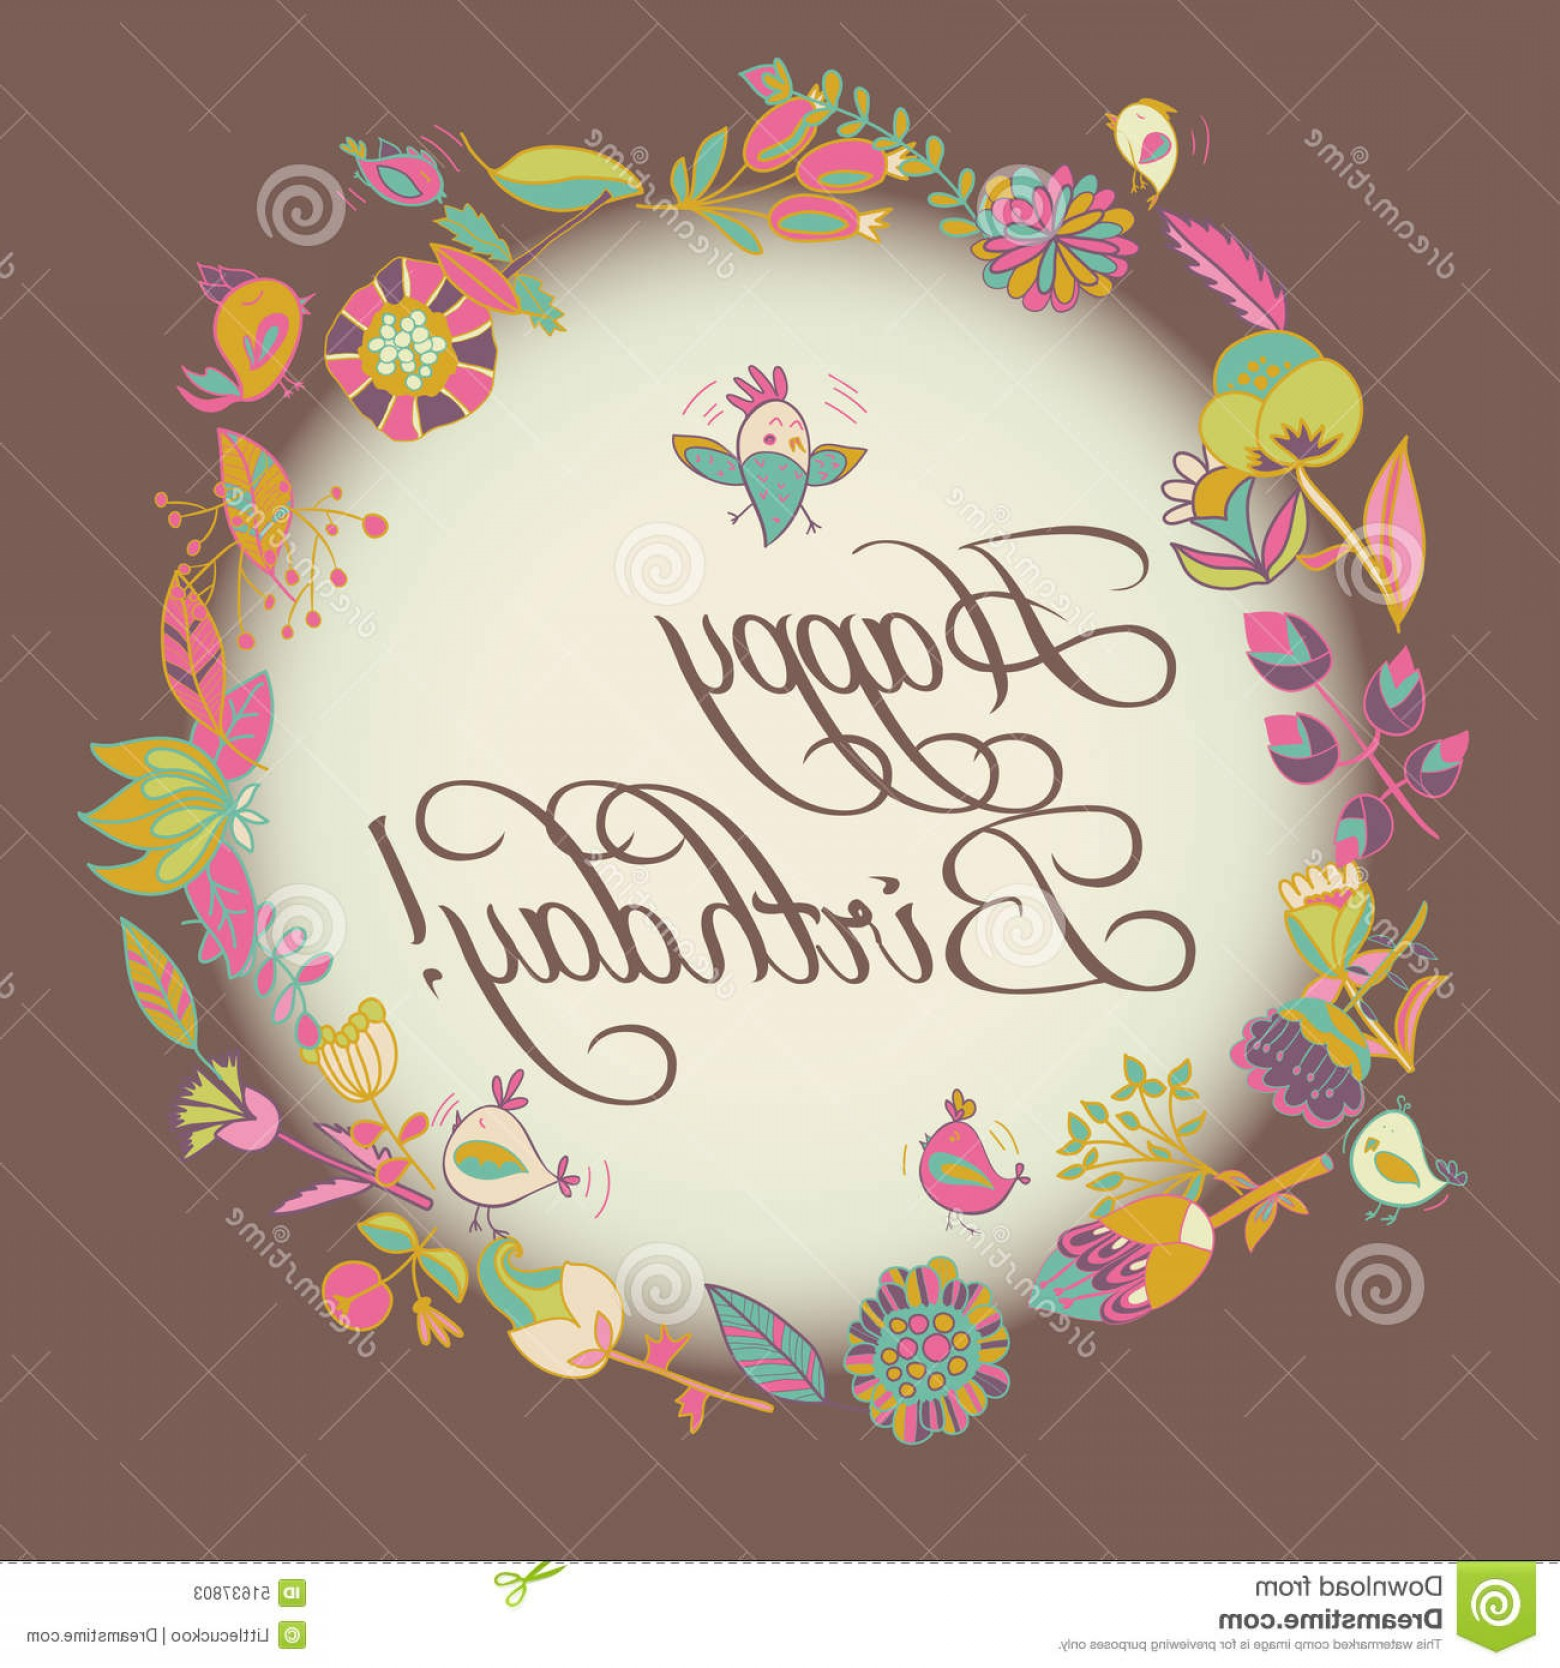 Birthday Card Vector Frame Designs: Stock Illustration Happy Birthday Greeting Card Circle Floral Frame Cute Cartoon Bird Flower Image